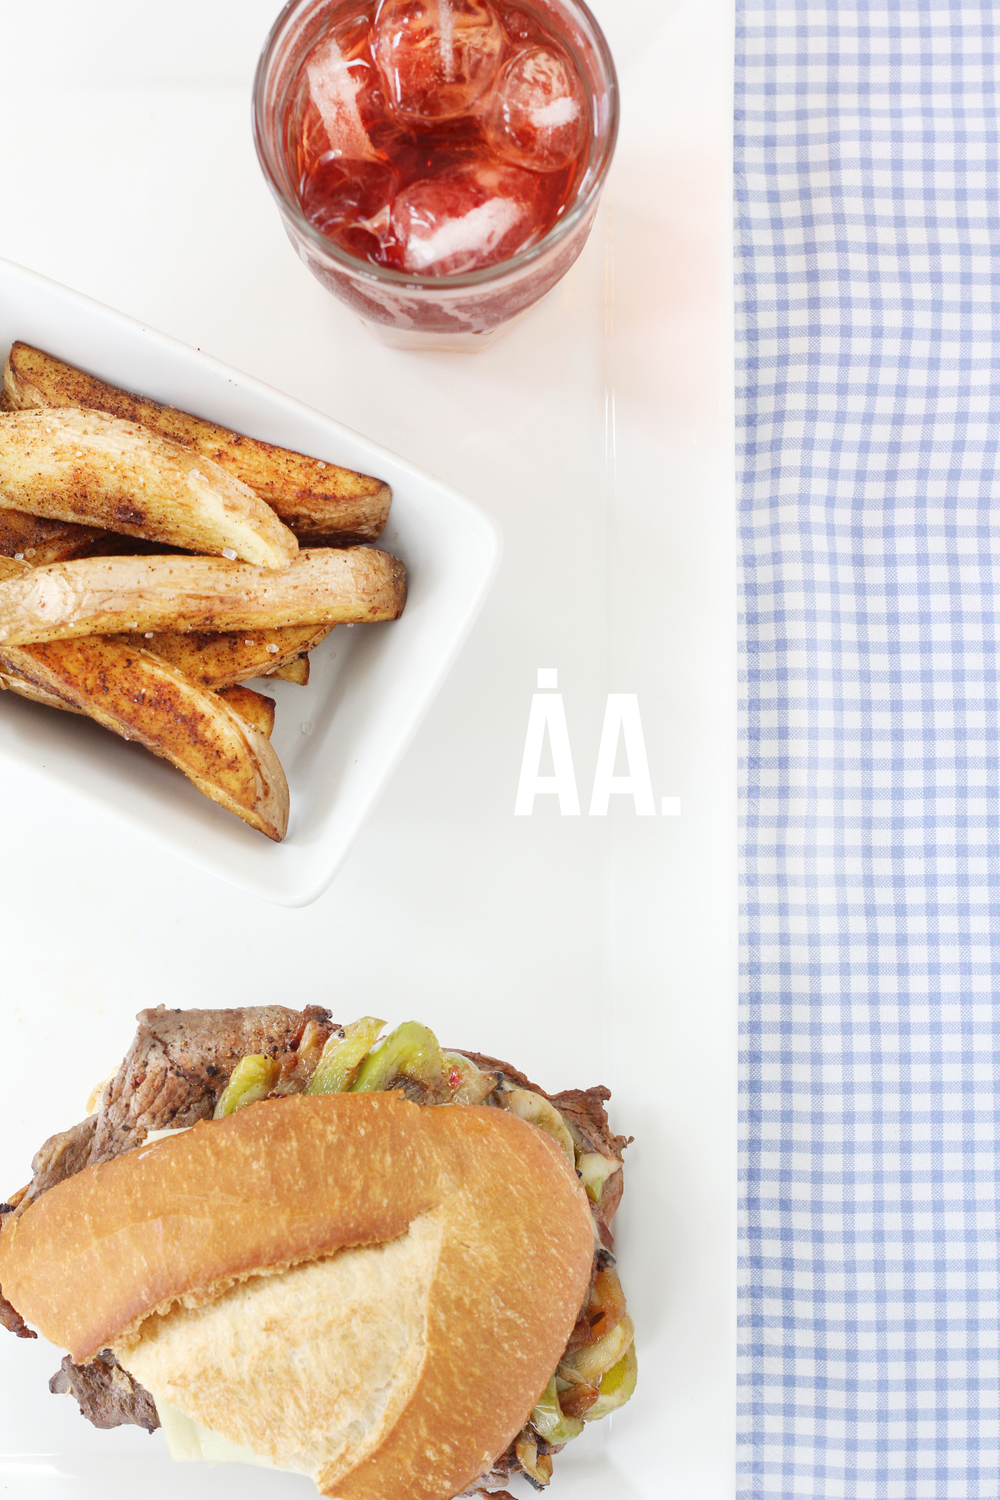 AndiAndrea's favorite shots of 2014: Philly Cheesesteak food shoot